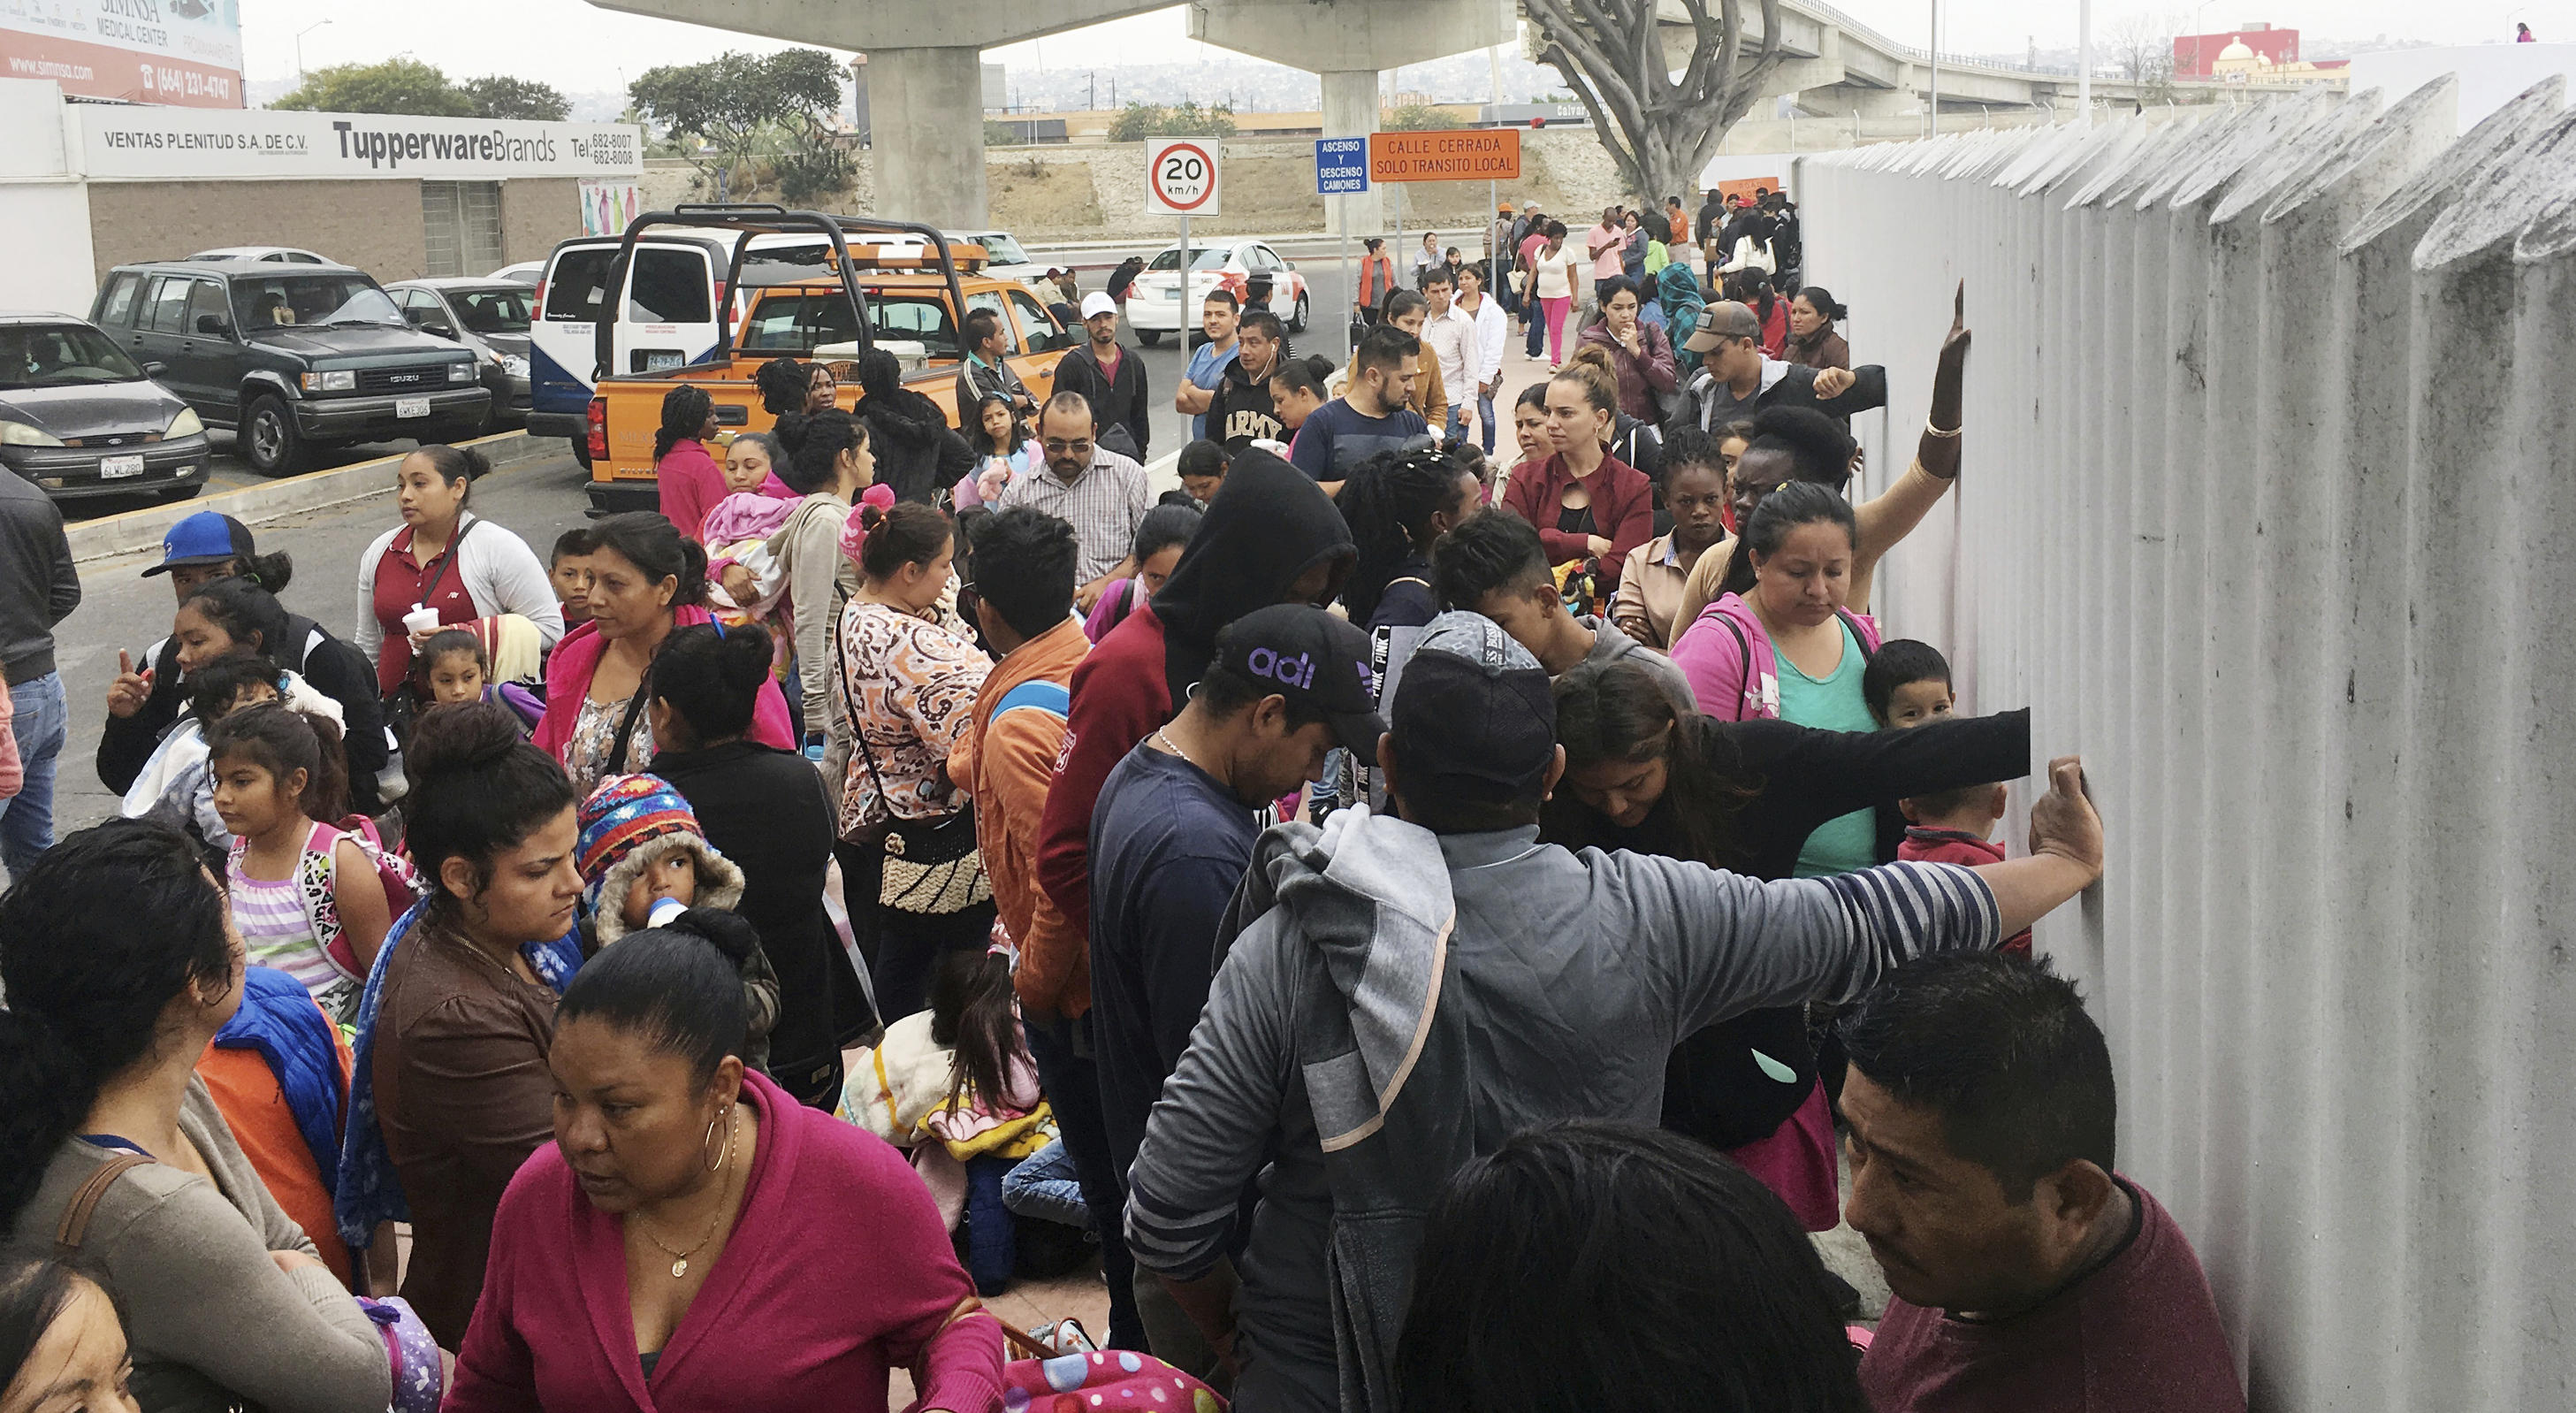 Asylum seekers wait days and weeks at U S -Mexico border